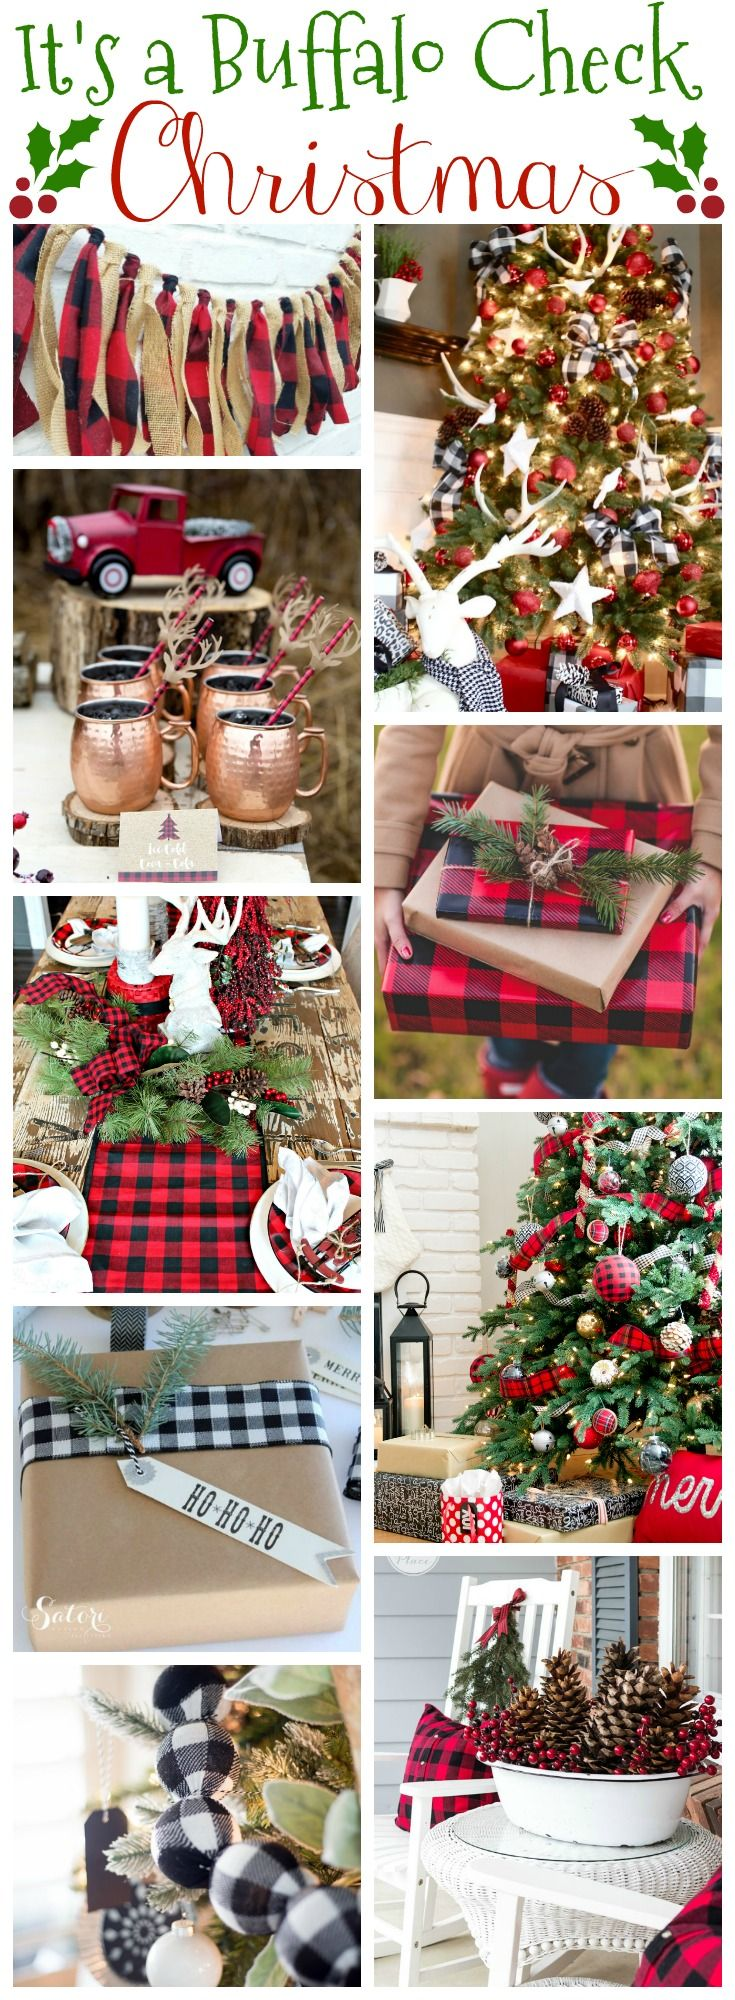 Best 25+ Rustic Christmas Decorations Ideas On Pinterest | Rustic Christmas,  Animated Christmas Decorations And Country Christmas Decorations